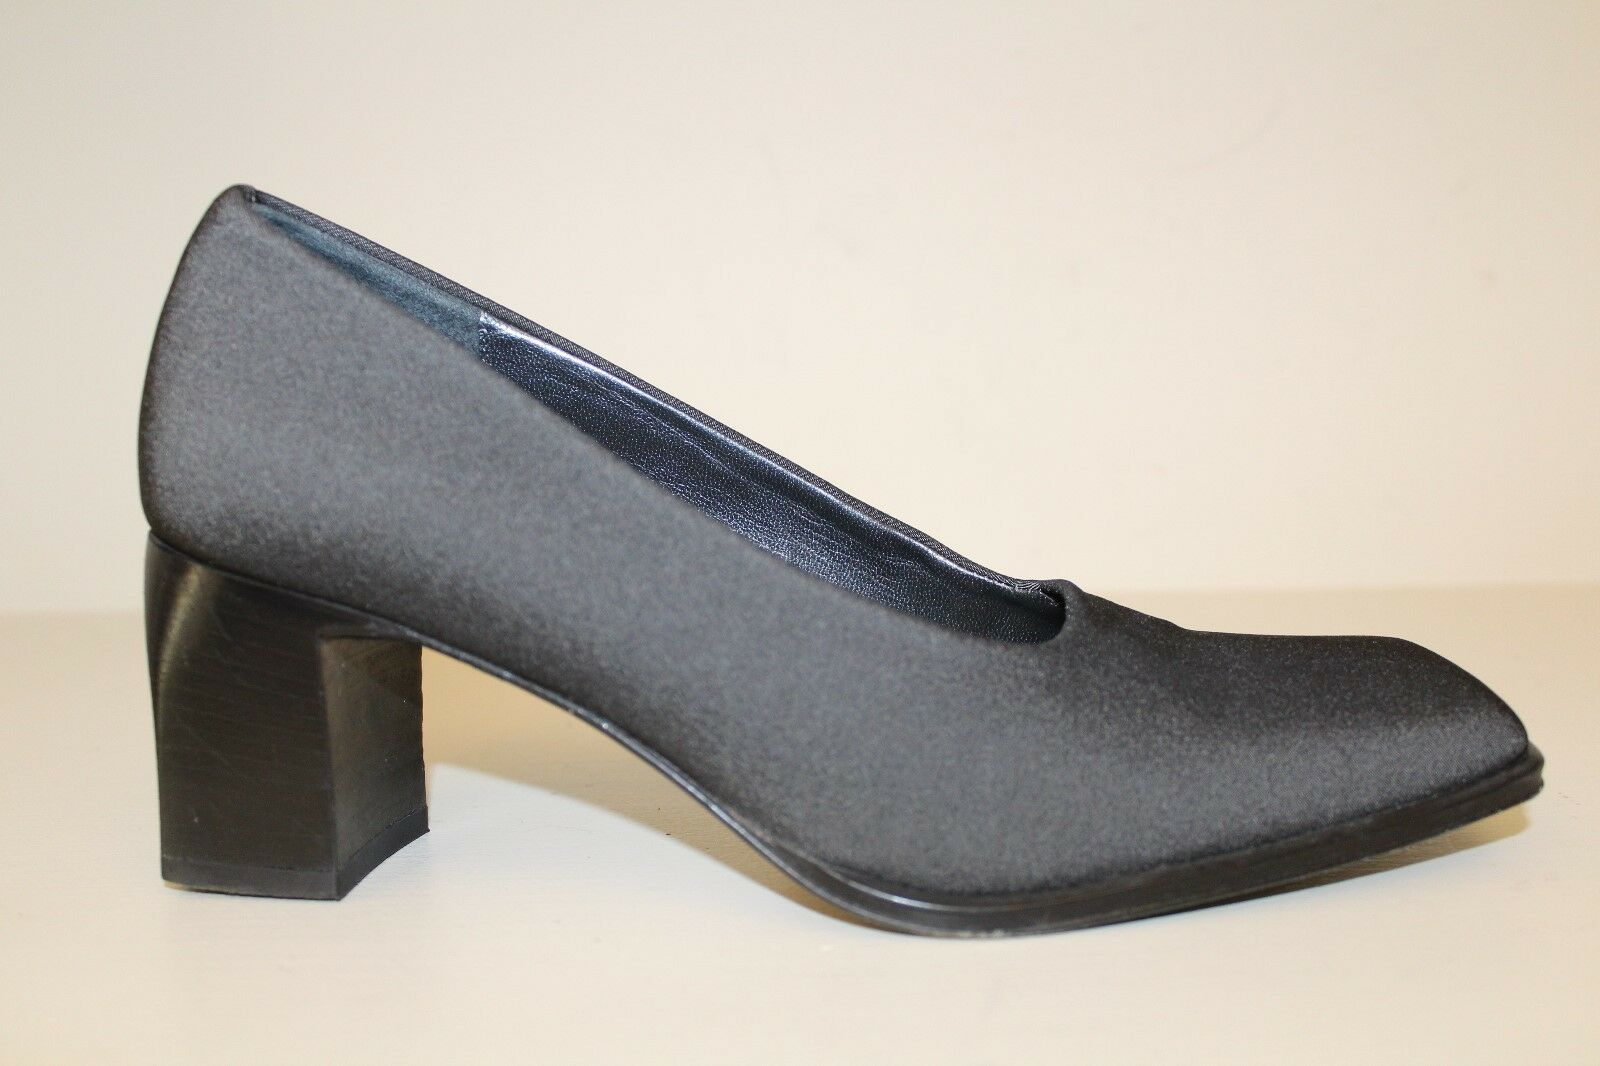 Ann Taylor Womens Womens Taylor Heel Pumps Shoes Sz 7 M Black Fabric Square Toe Made In Italy eae57a